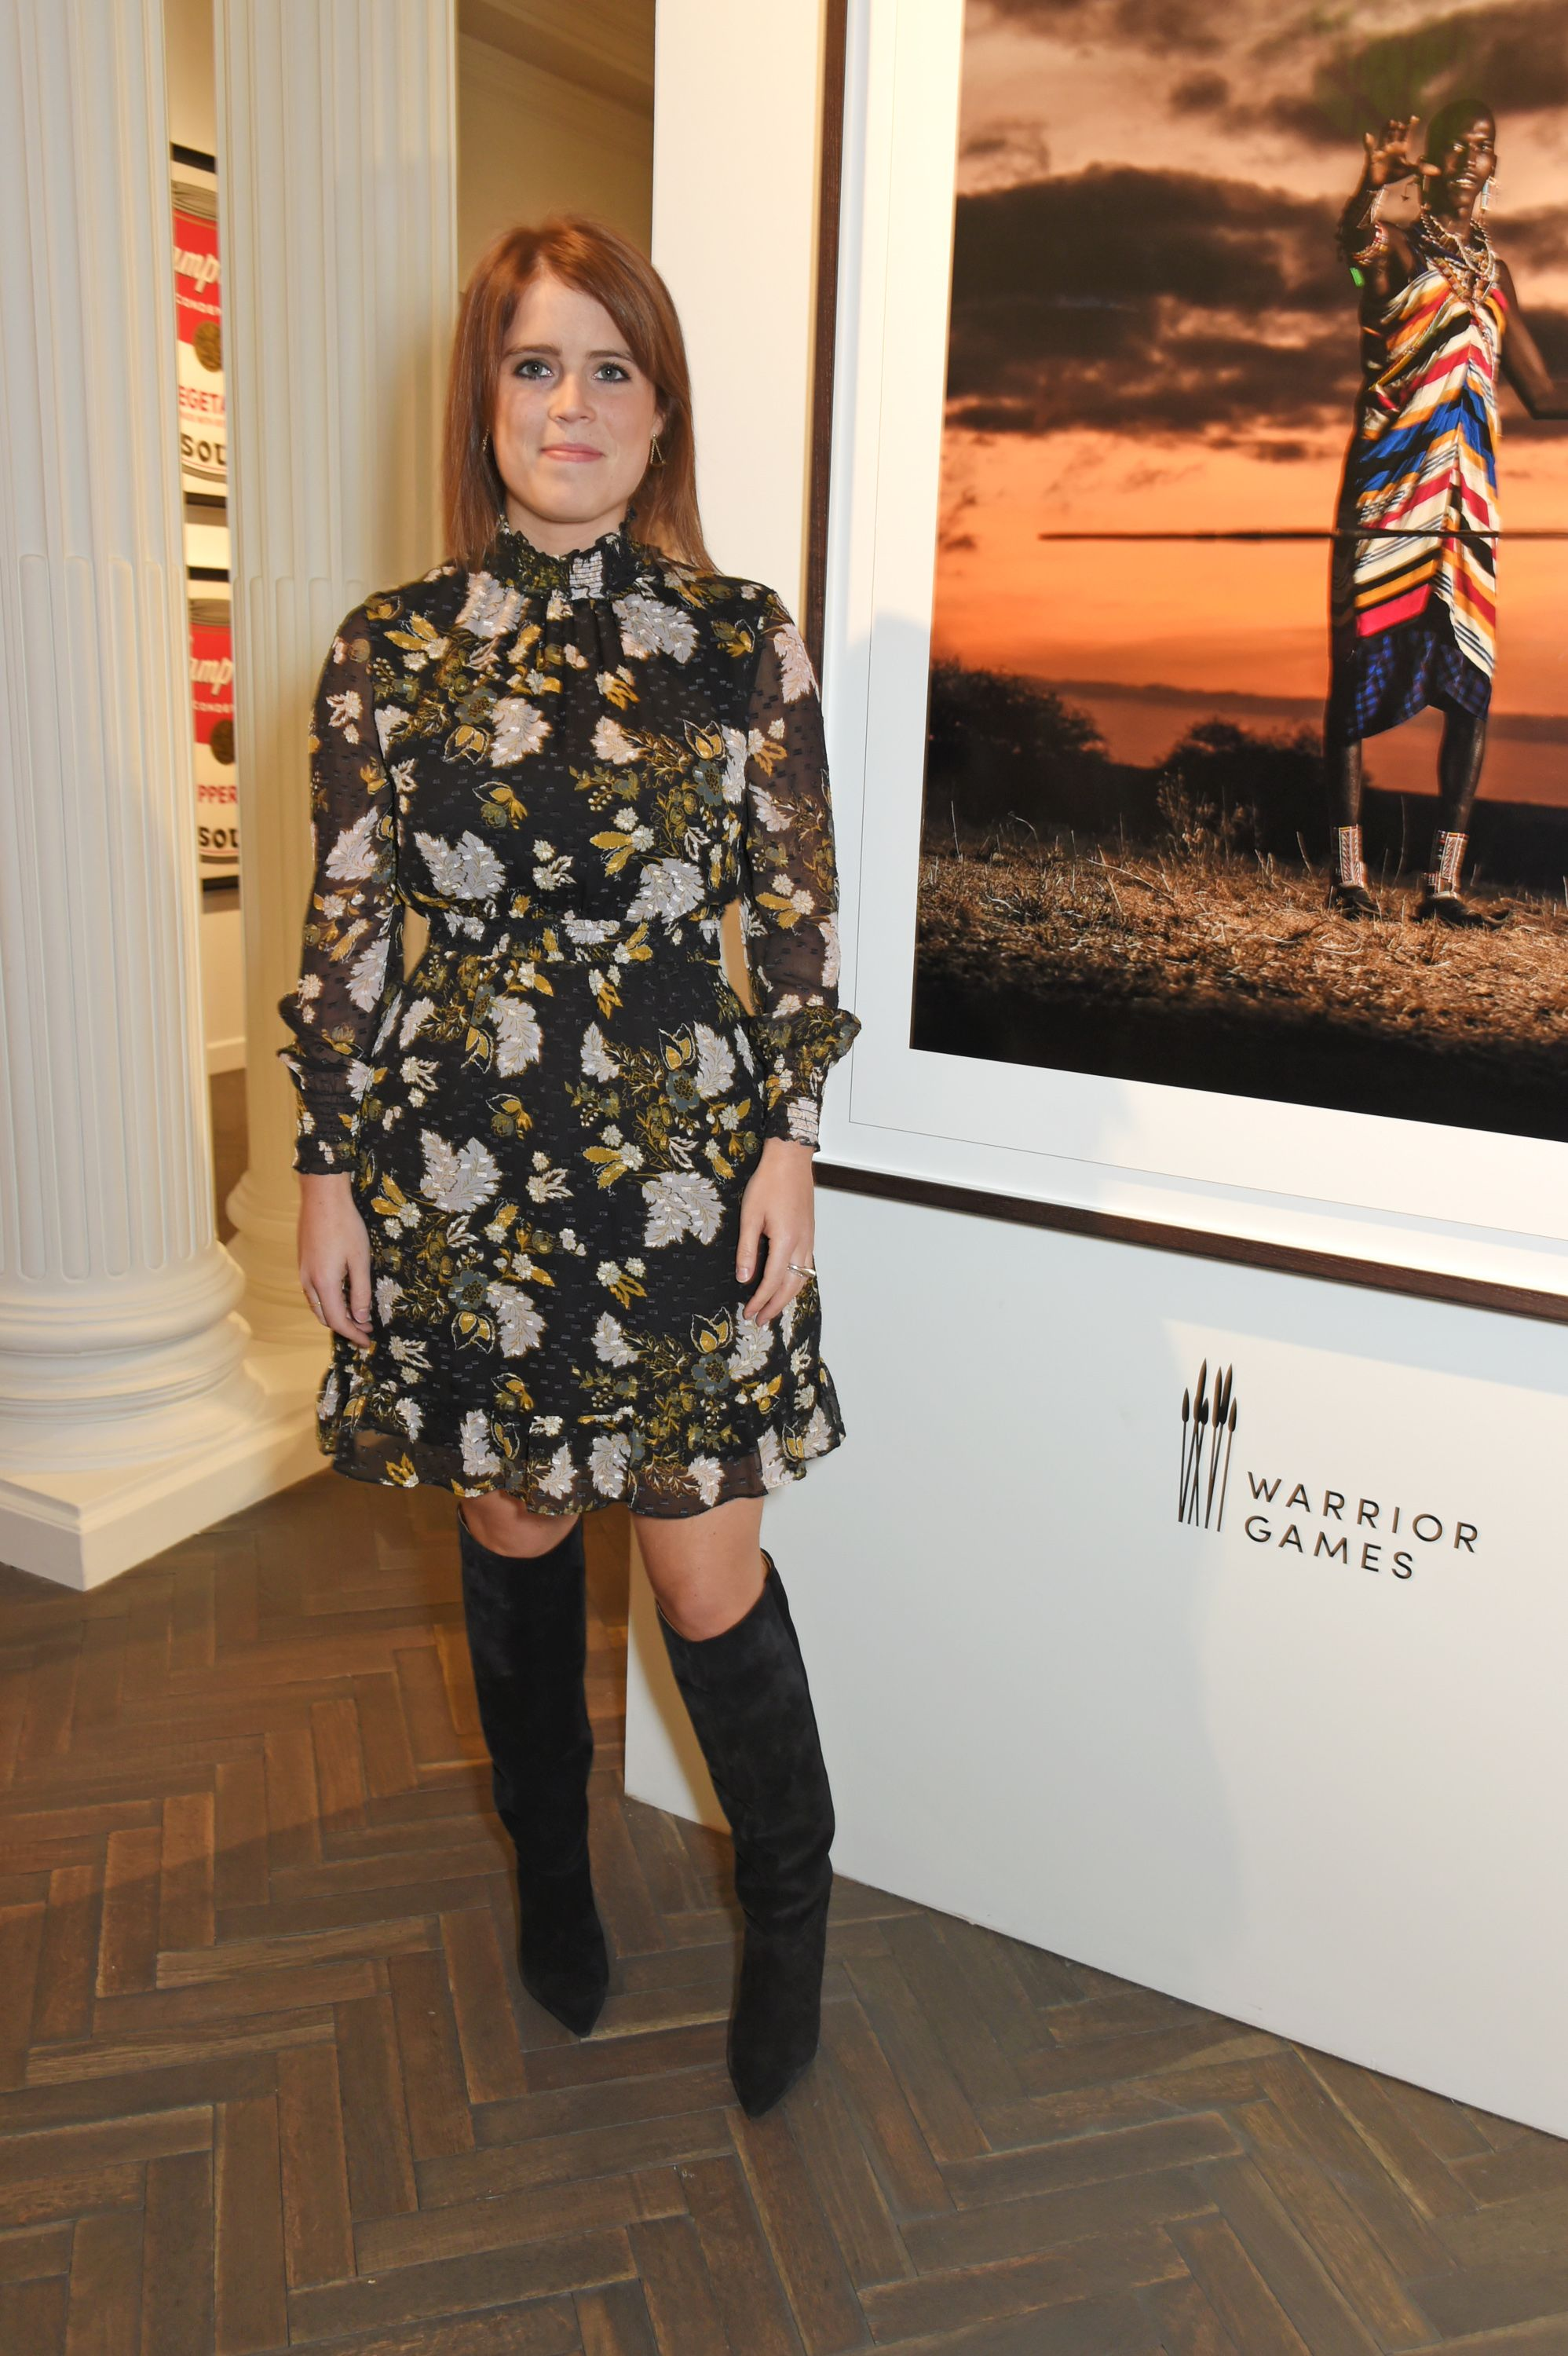 Town And Country Auction >> Who Is Princess Eugenie, Queen Elizabeth's Granddaughter? - 5 Facts About Princess Eugenie of York